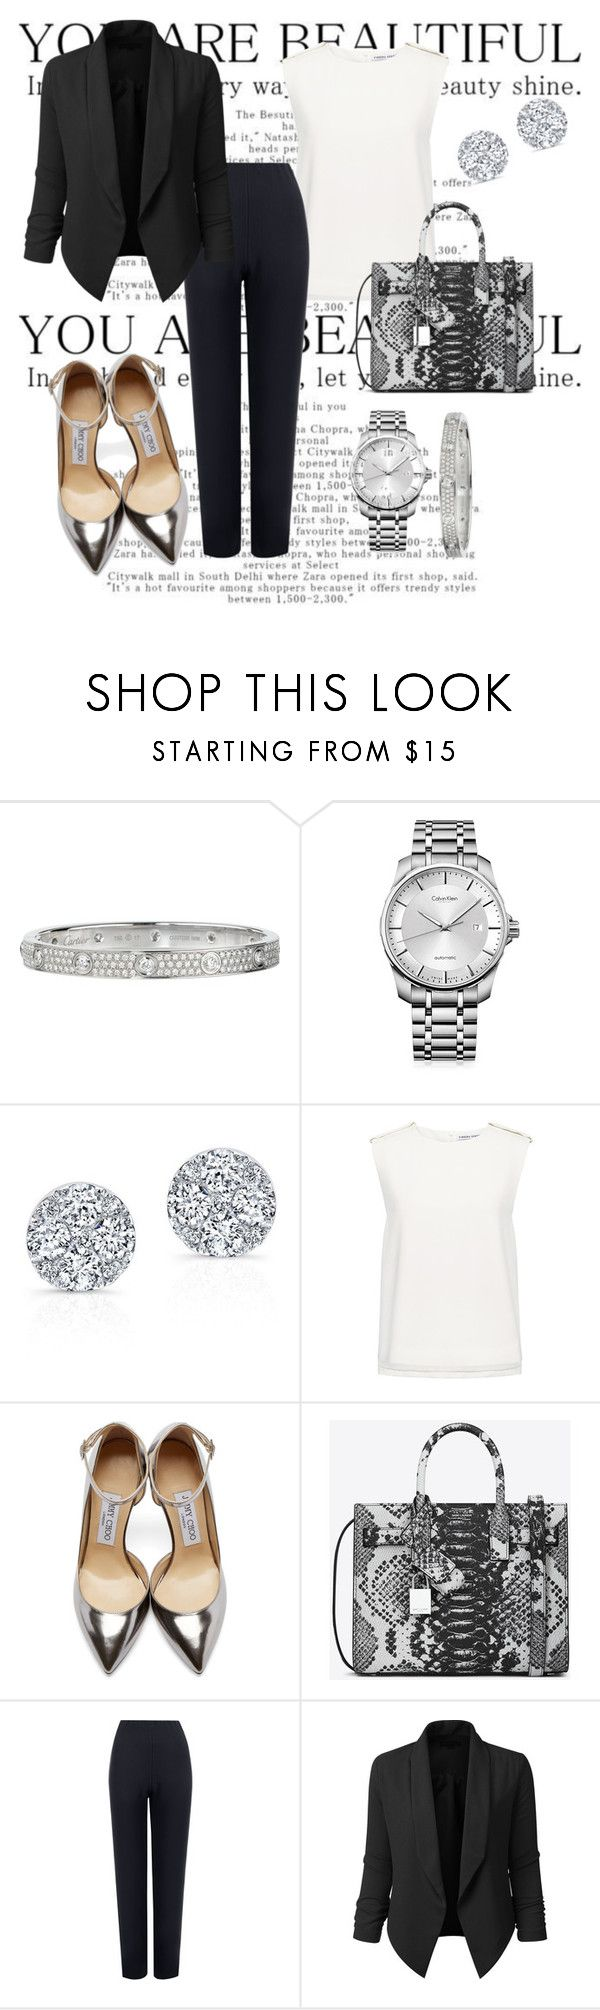 """""""Classic lady❤️"""" by naynomis-man ❤ liked on Polyvore featuring Cartier, Calvin Klein, Anne Sisteron, Finders Keepers, Jimmy Choo, Yves Saint Laurent, WearAll and LE3NO"""